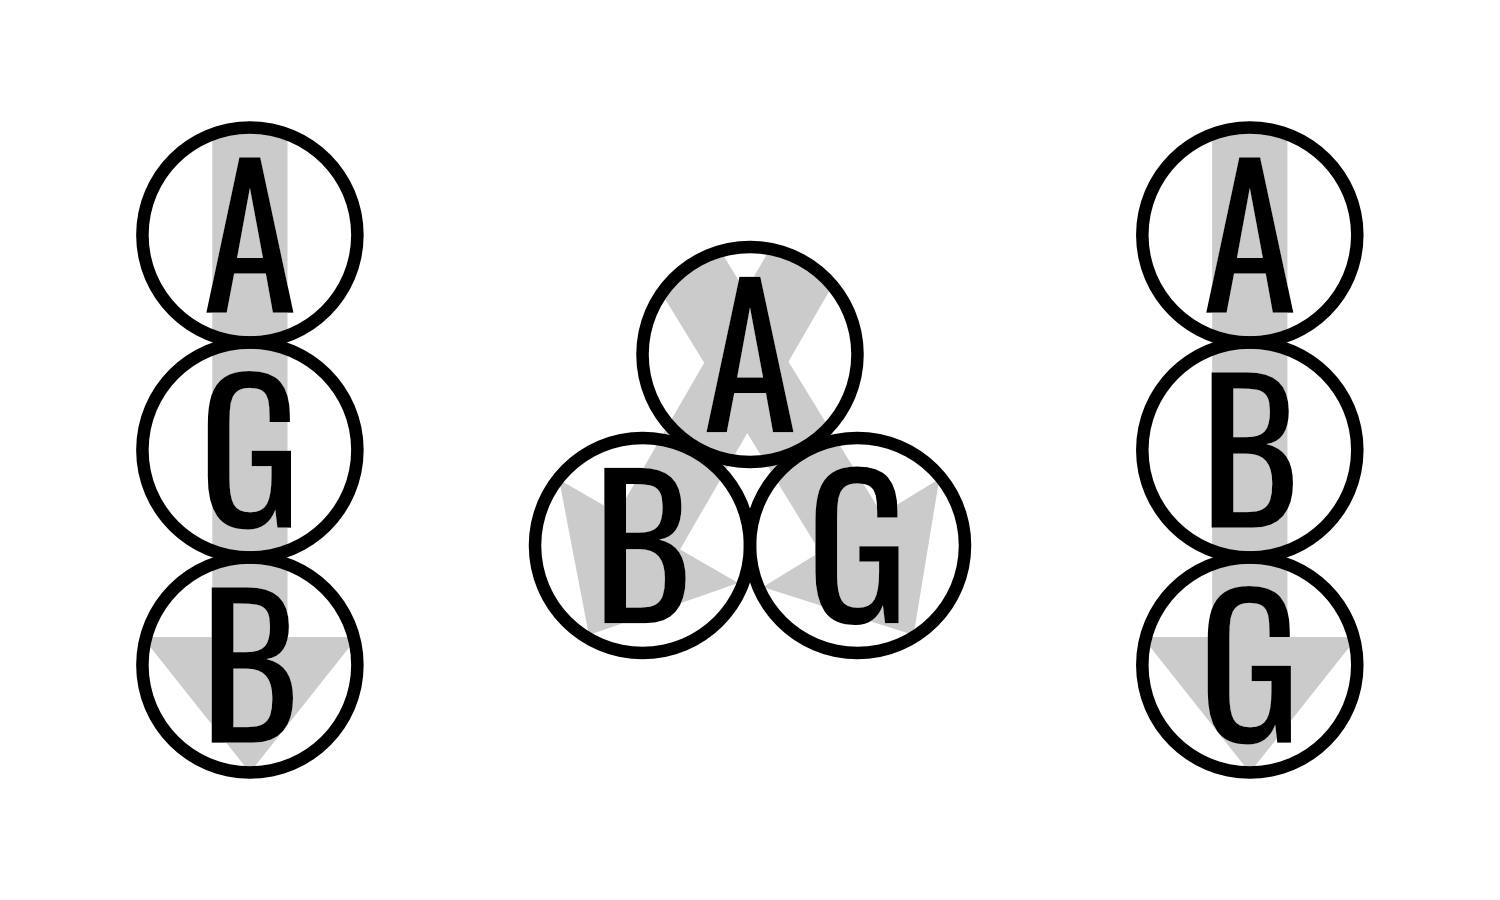 Three possible relations of an action (A) which has a good (G) and bad effect (B). The second principle of the doctrine of double effect allows for the first two relations, but not the third, where the good effect comes about as a result of bad effect.